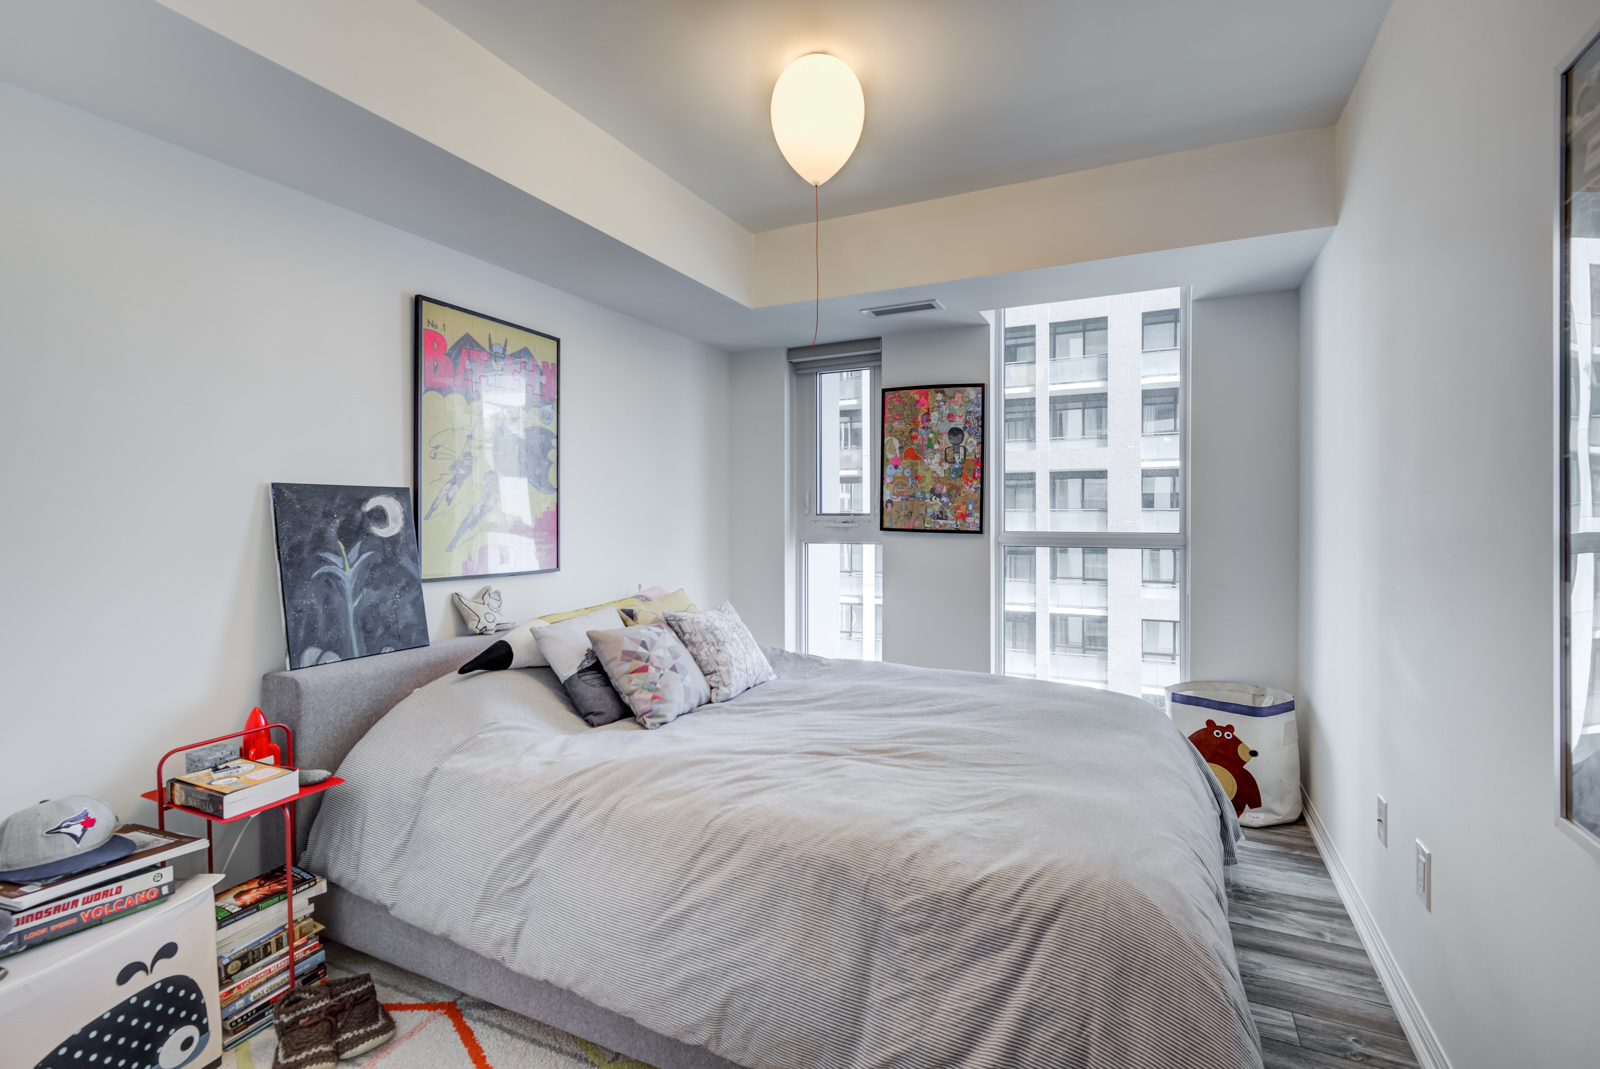 Second bedroom with large bed and windows plus wall art.